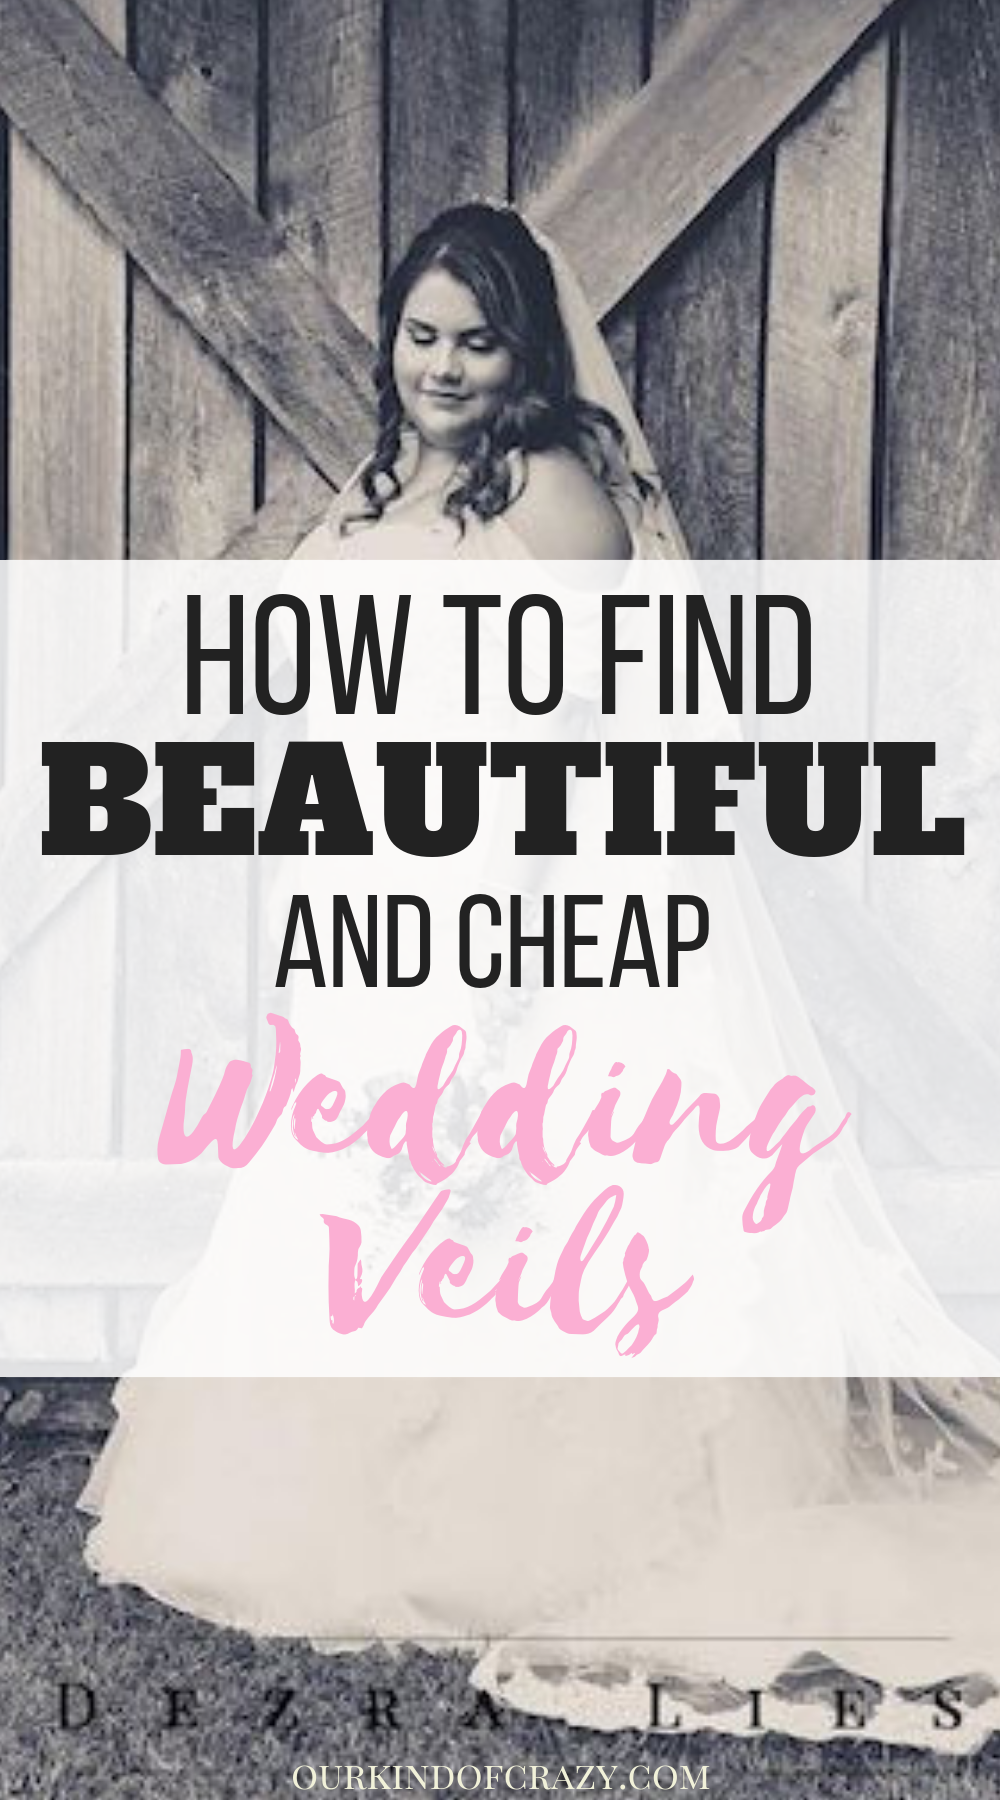 Affordable and Cheap Wedding Veils - Budget Wedding? Look for these great deals on your Veil.